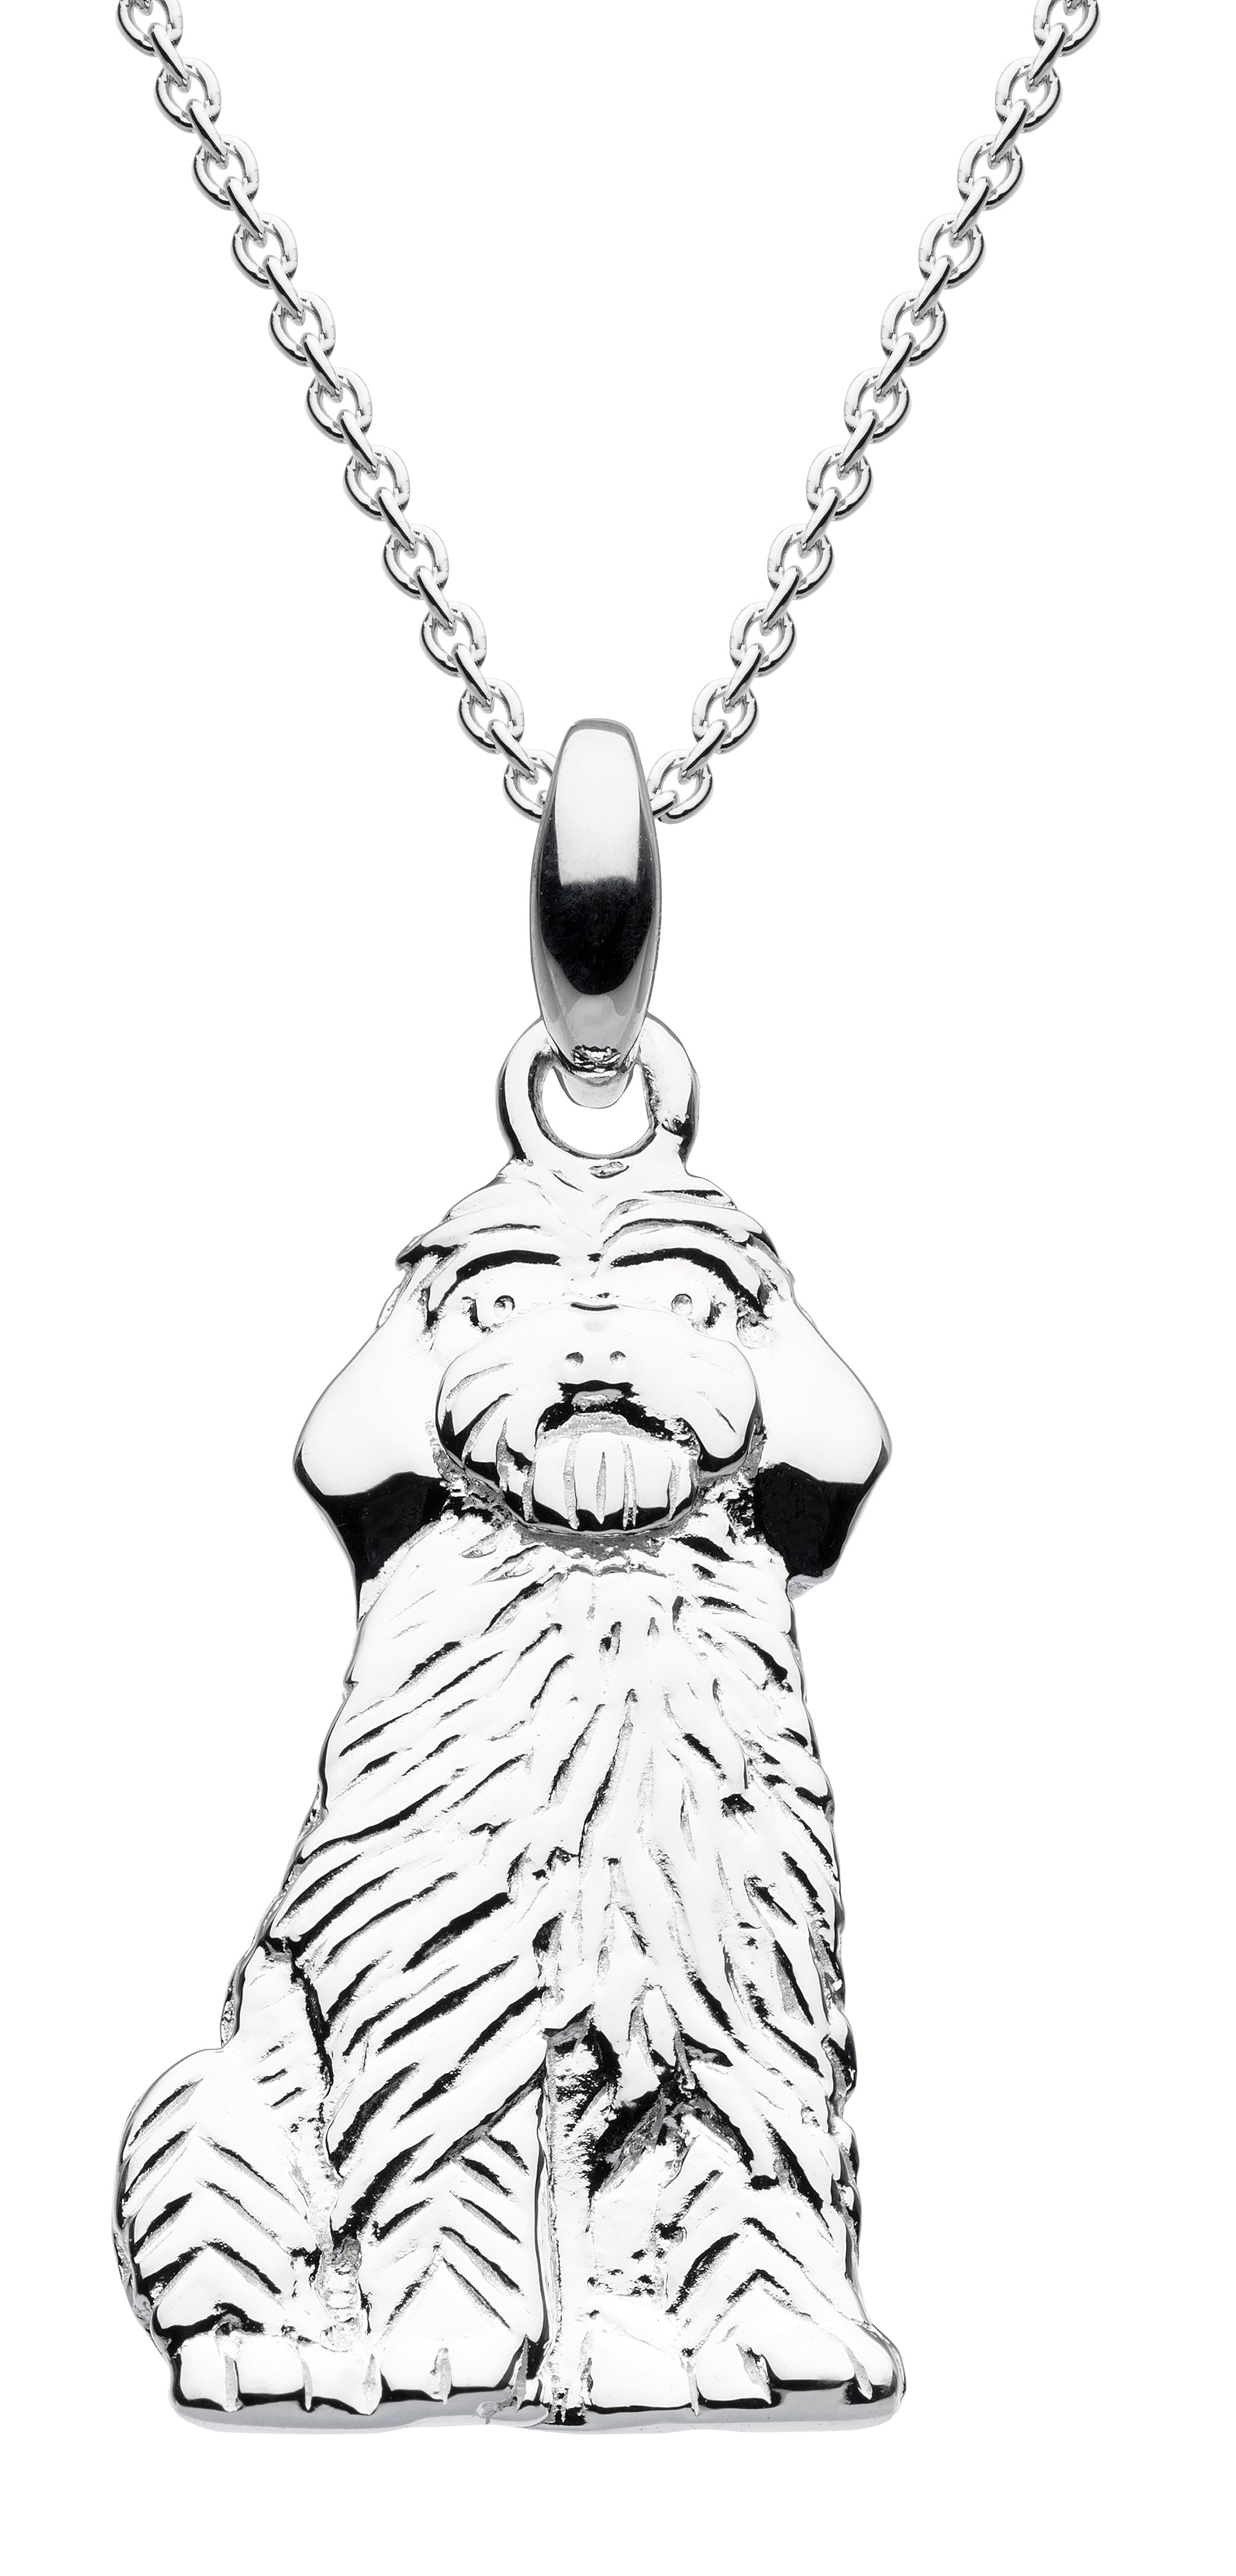 Cockapoo pendant on chain